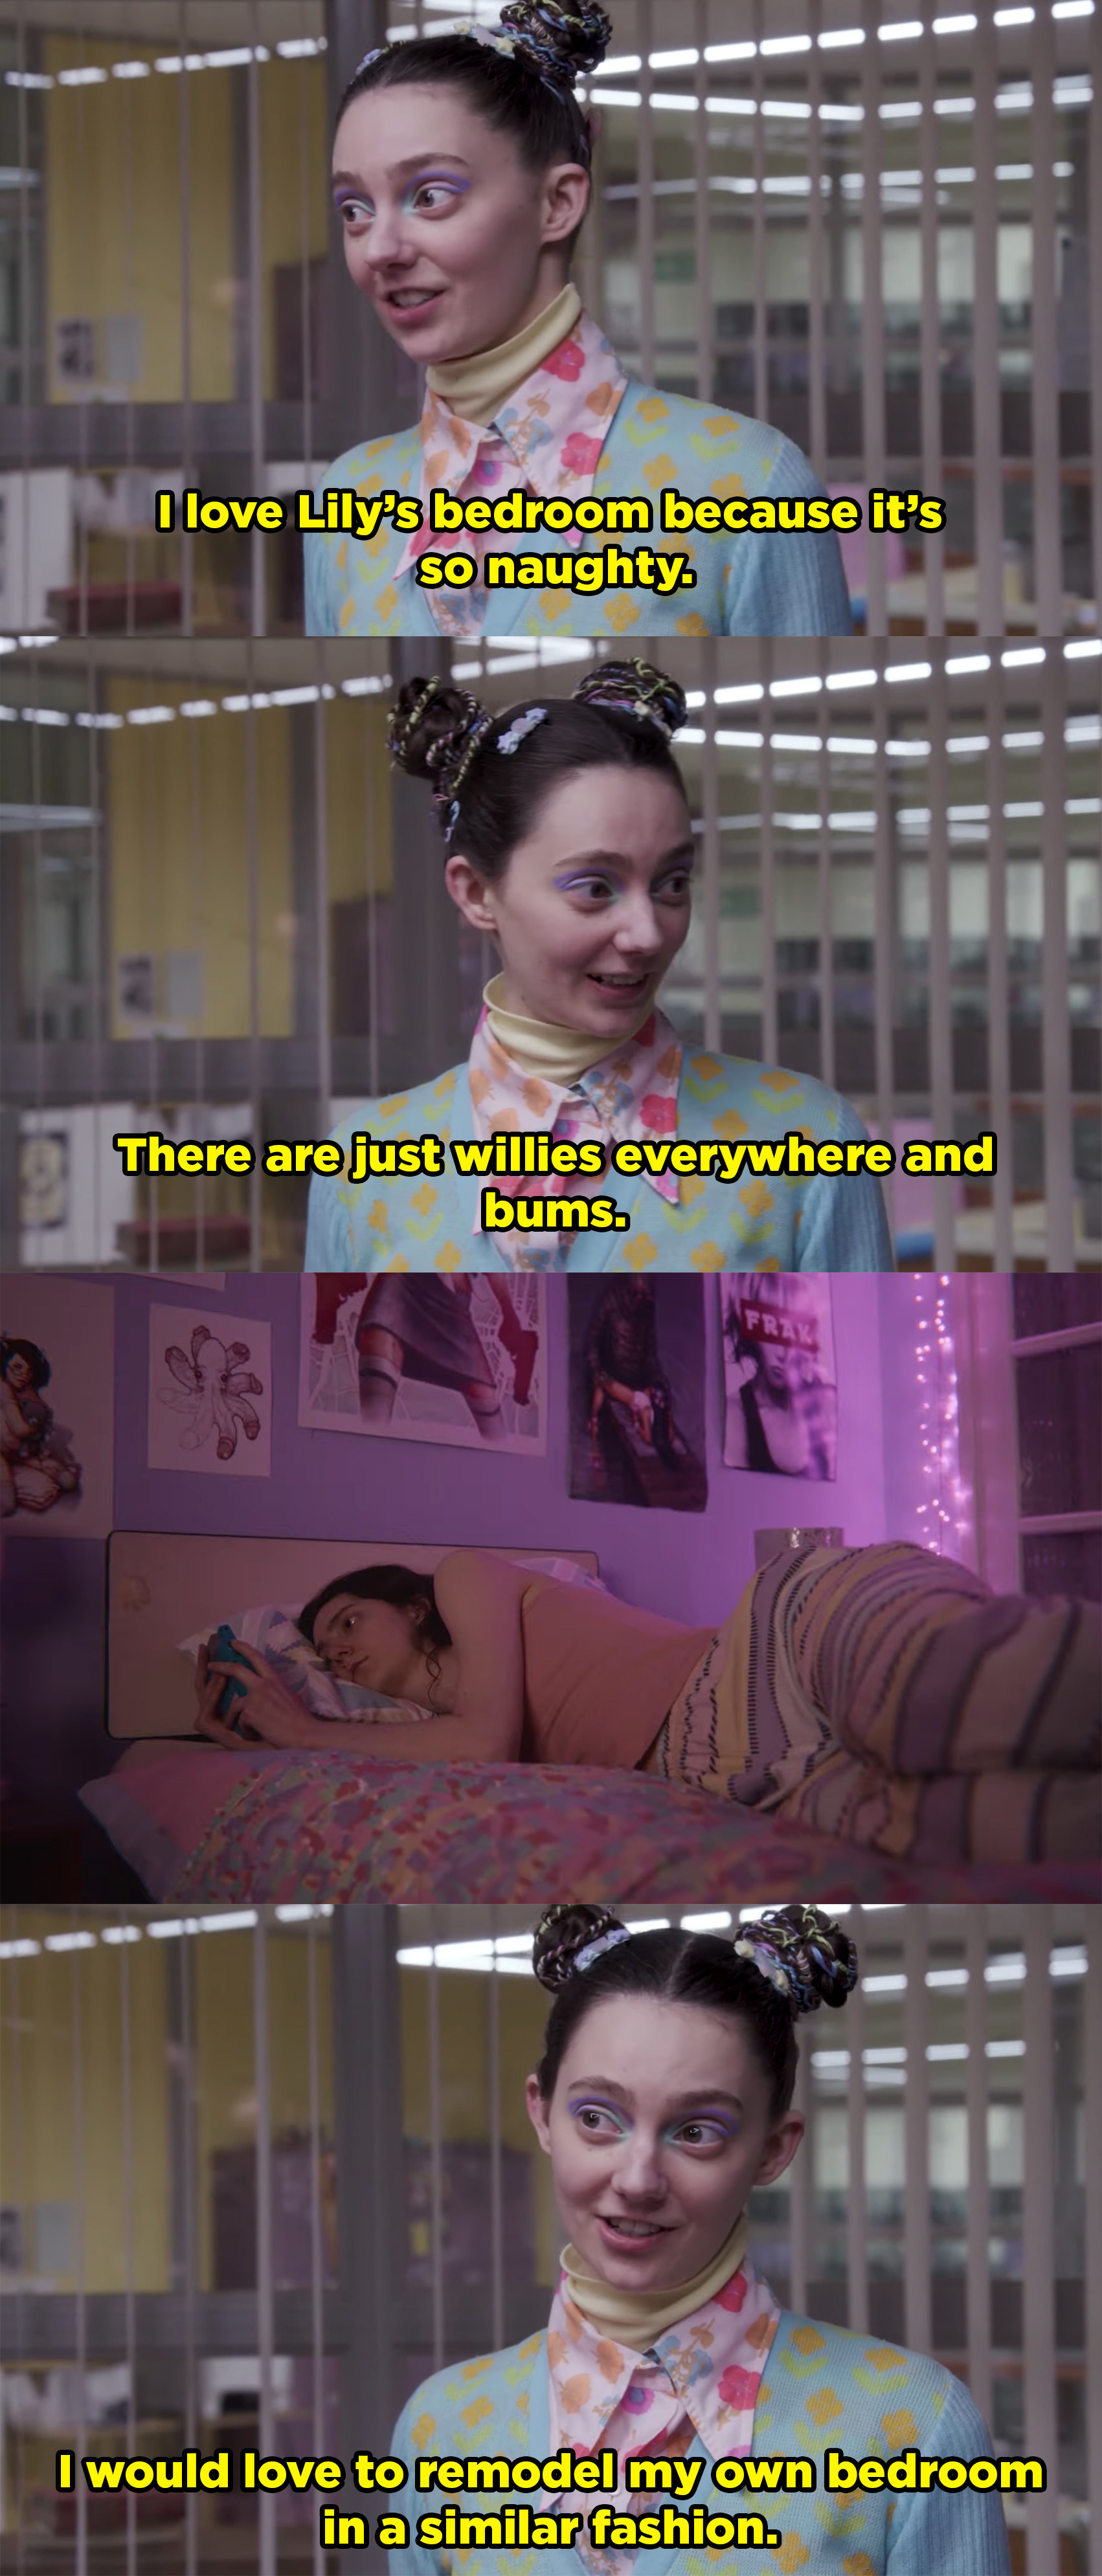 """Tanya says she loves Lily's room because there are """"willies and bums"""" everywhere and jokes she'd like to decorate her room like that."""